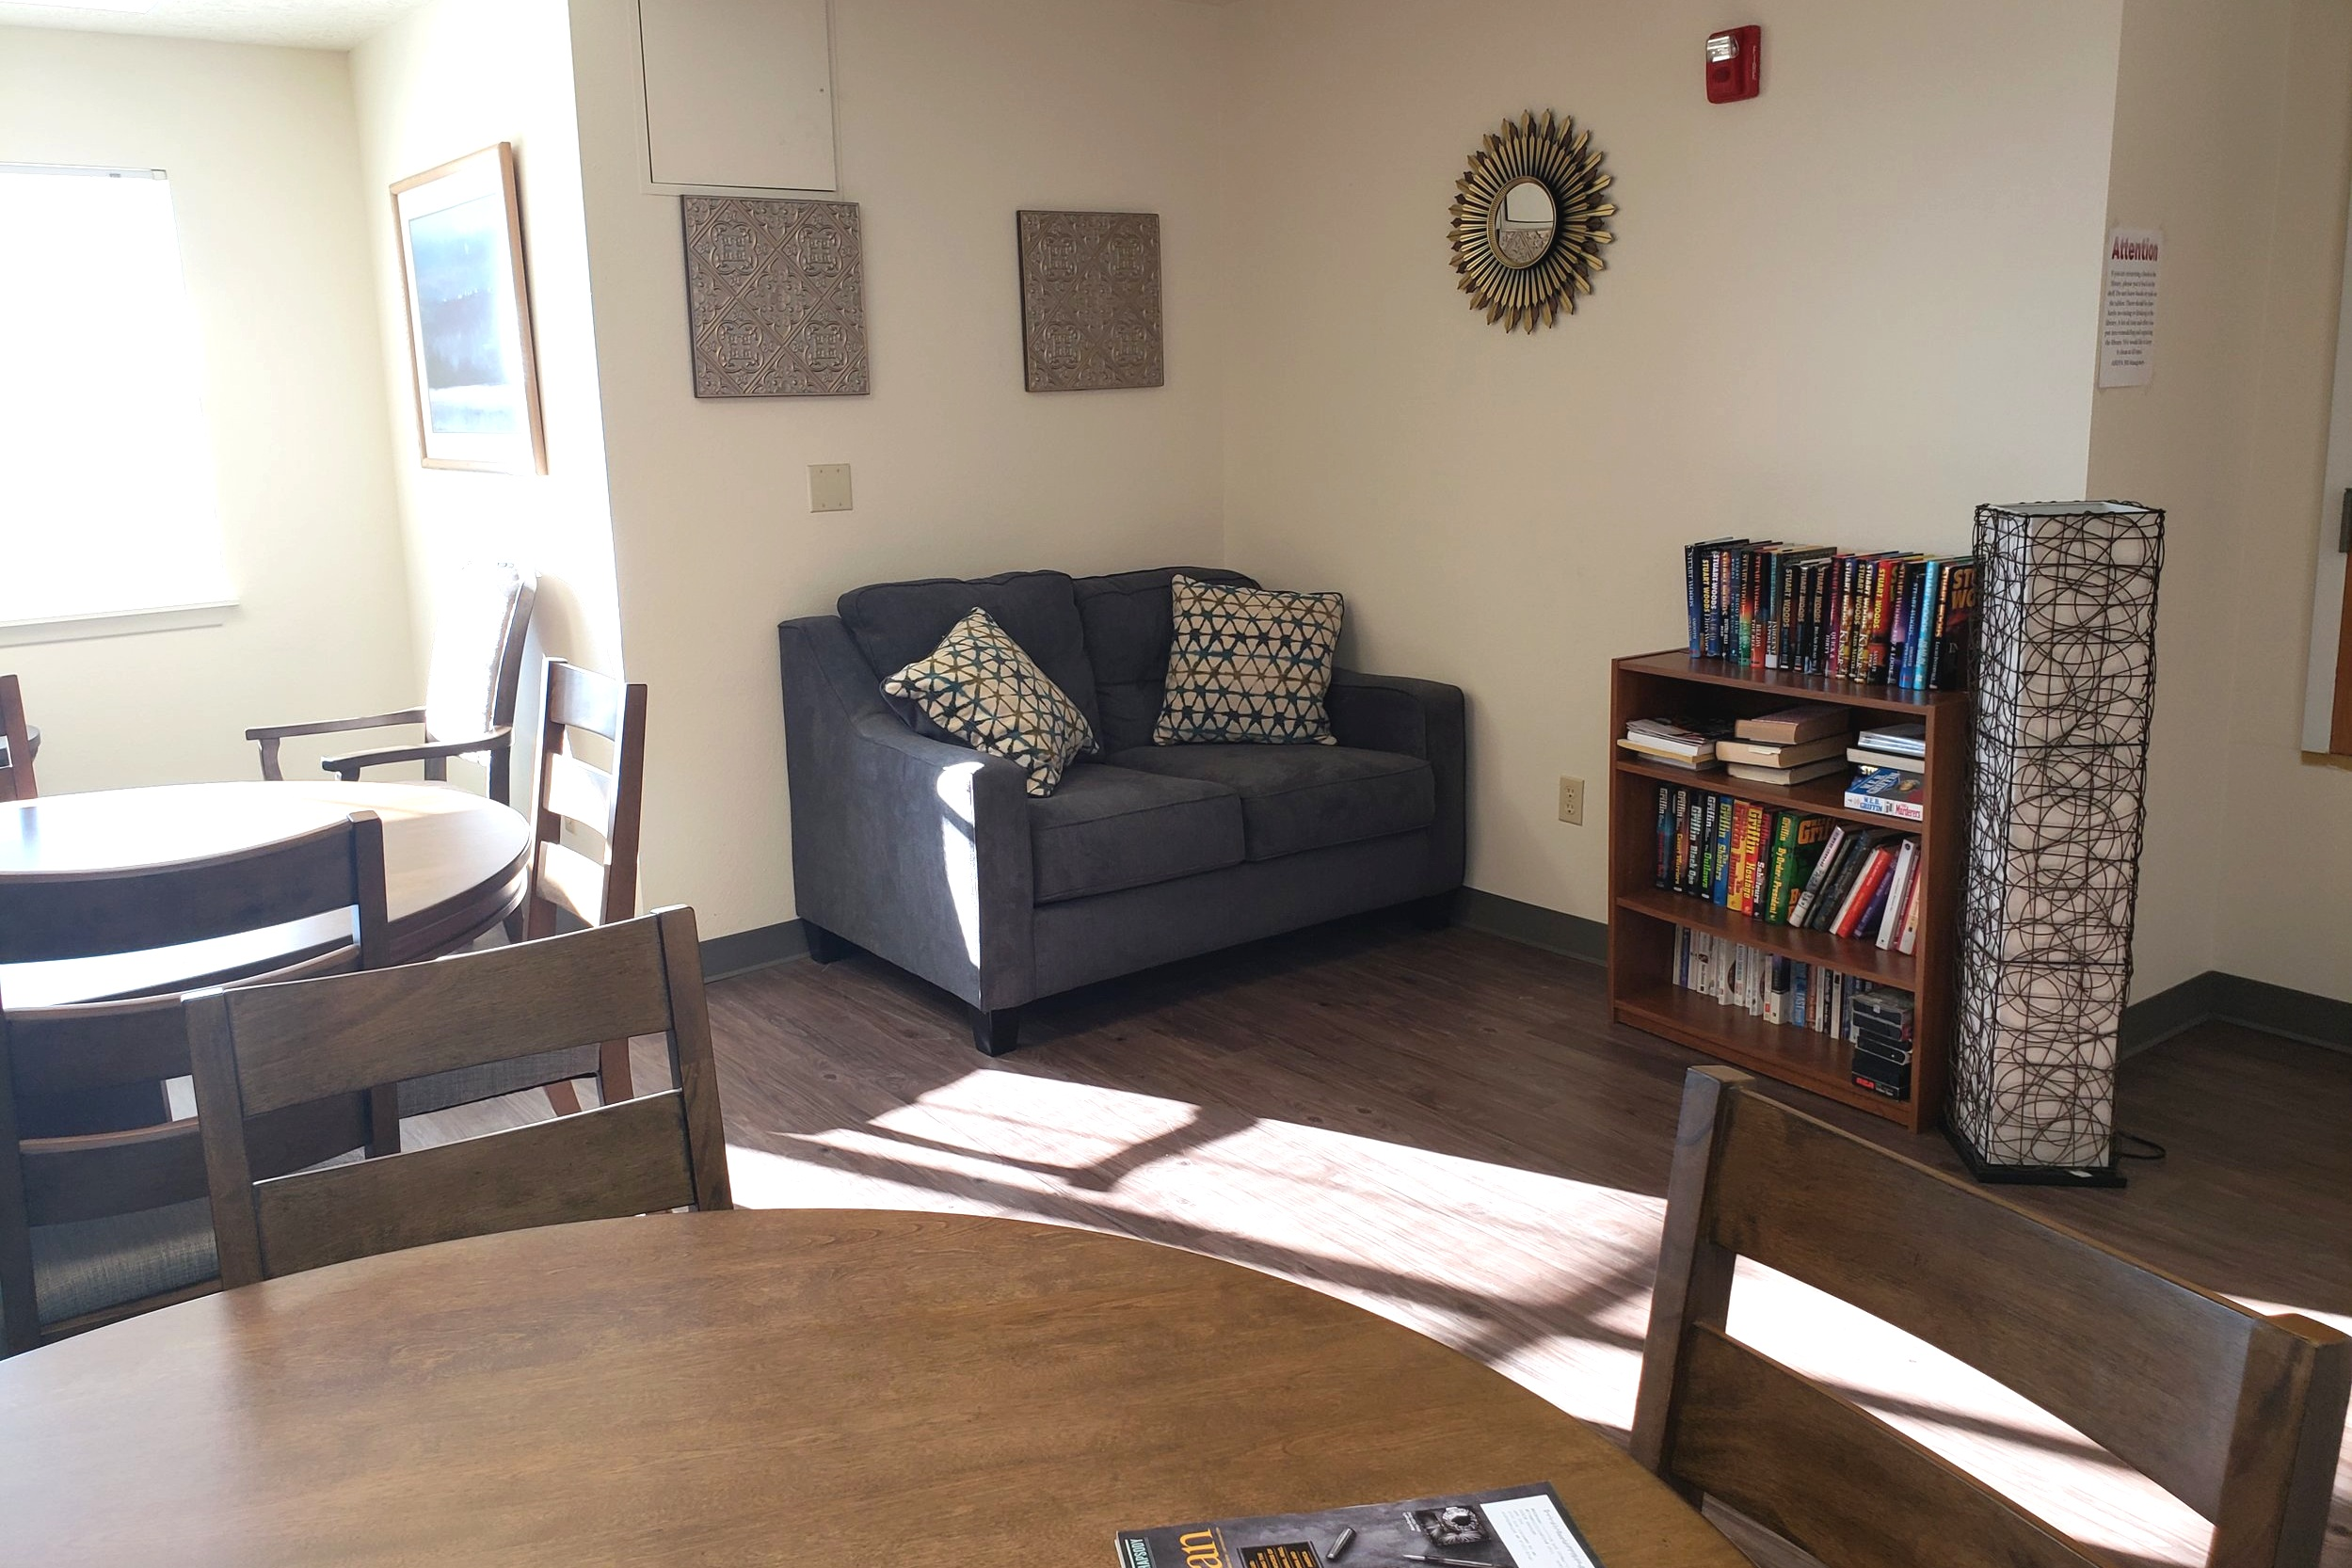 A50102_Library Seating area_2018Nov14.jpg